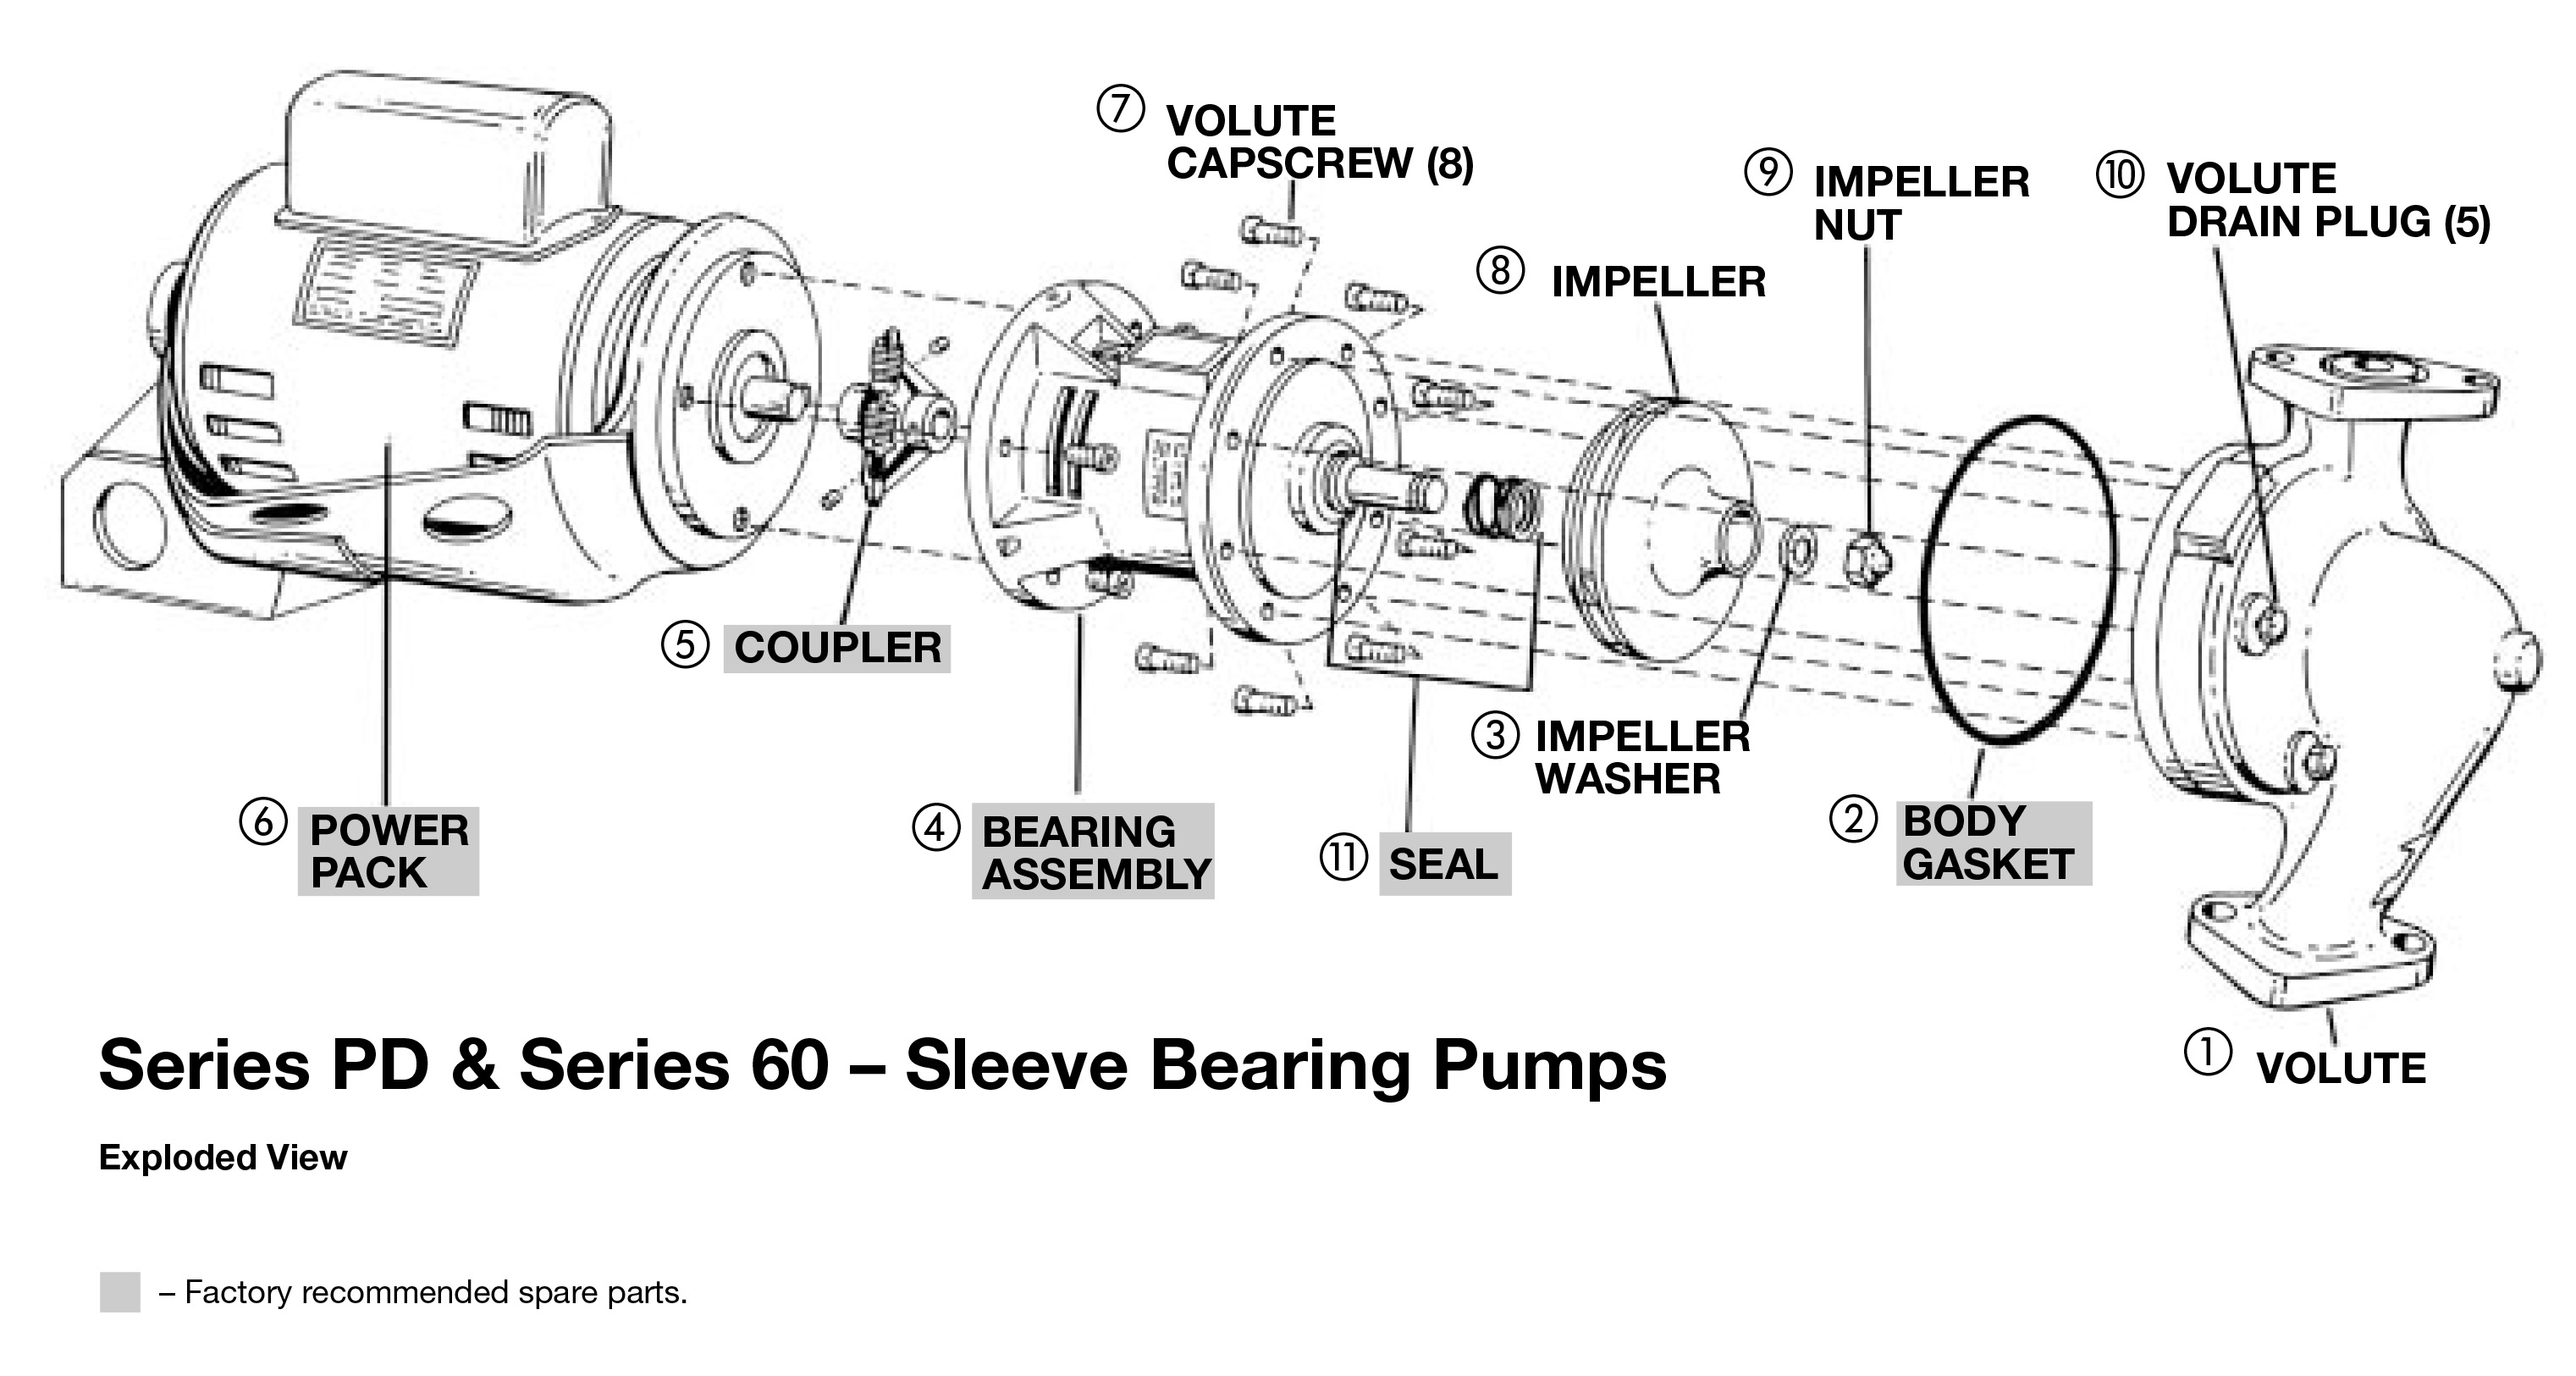 grundfos pump schematic